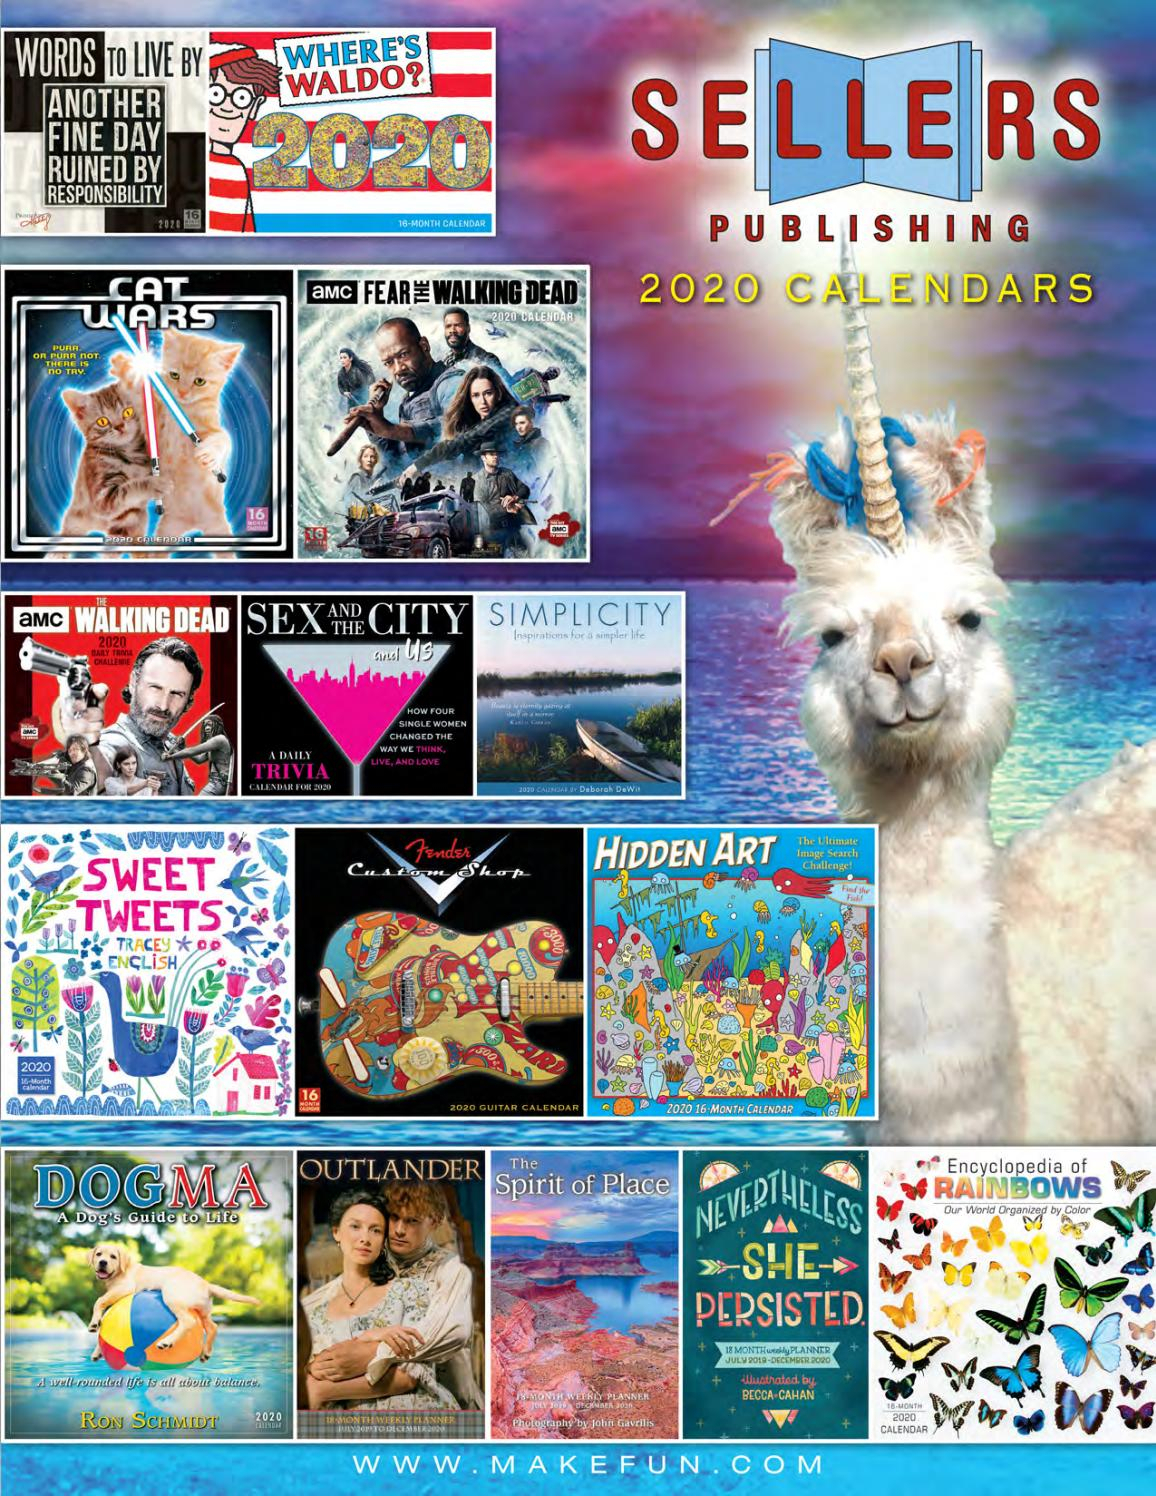 2020 Calendars From Sellers Publishing By Sellers Publishing with Empires And Puzzles Events Calendar